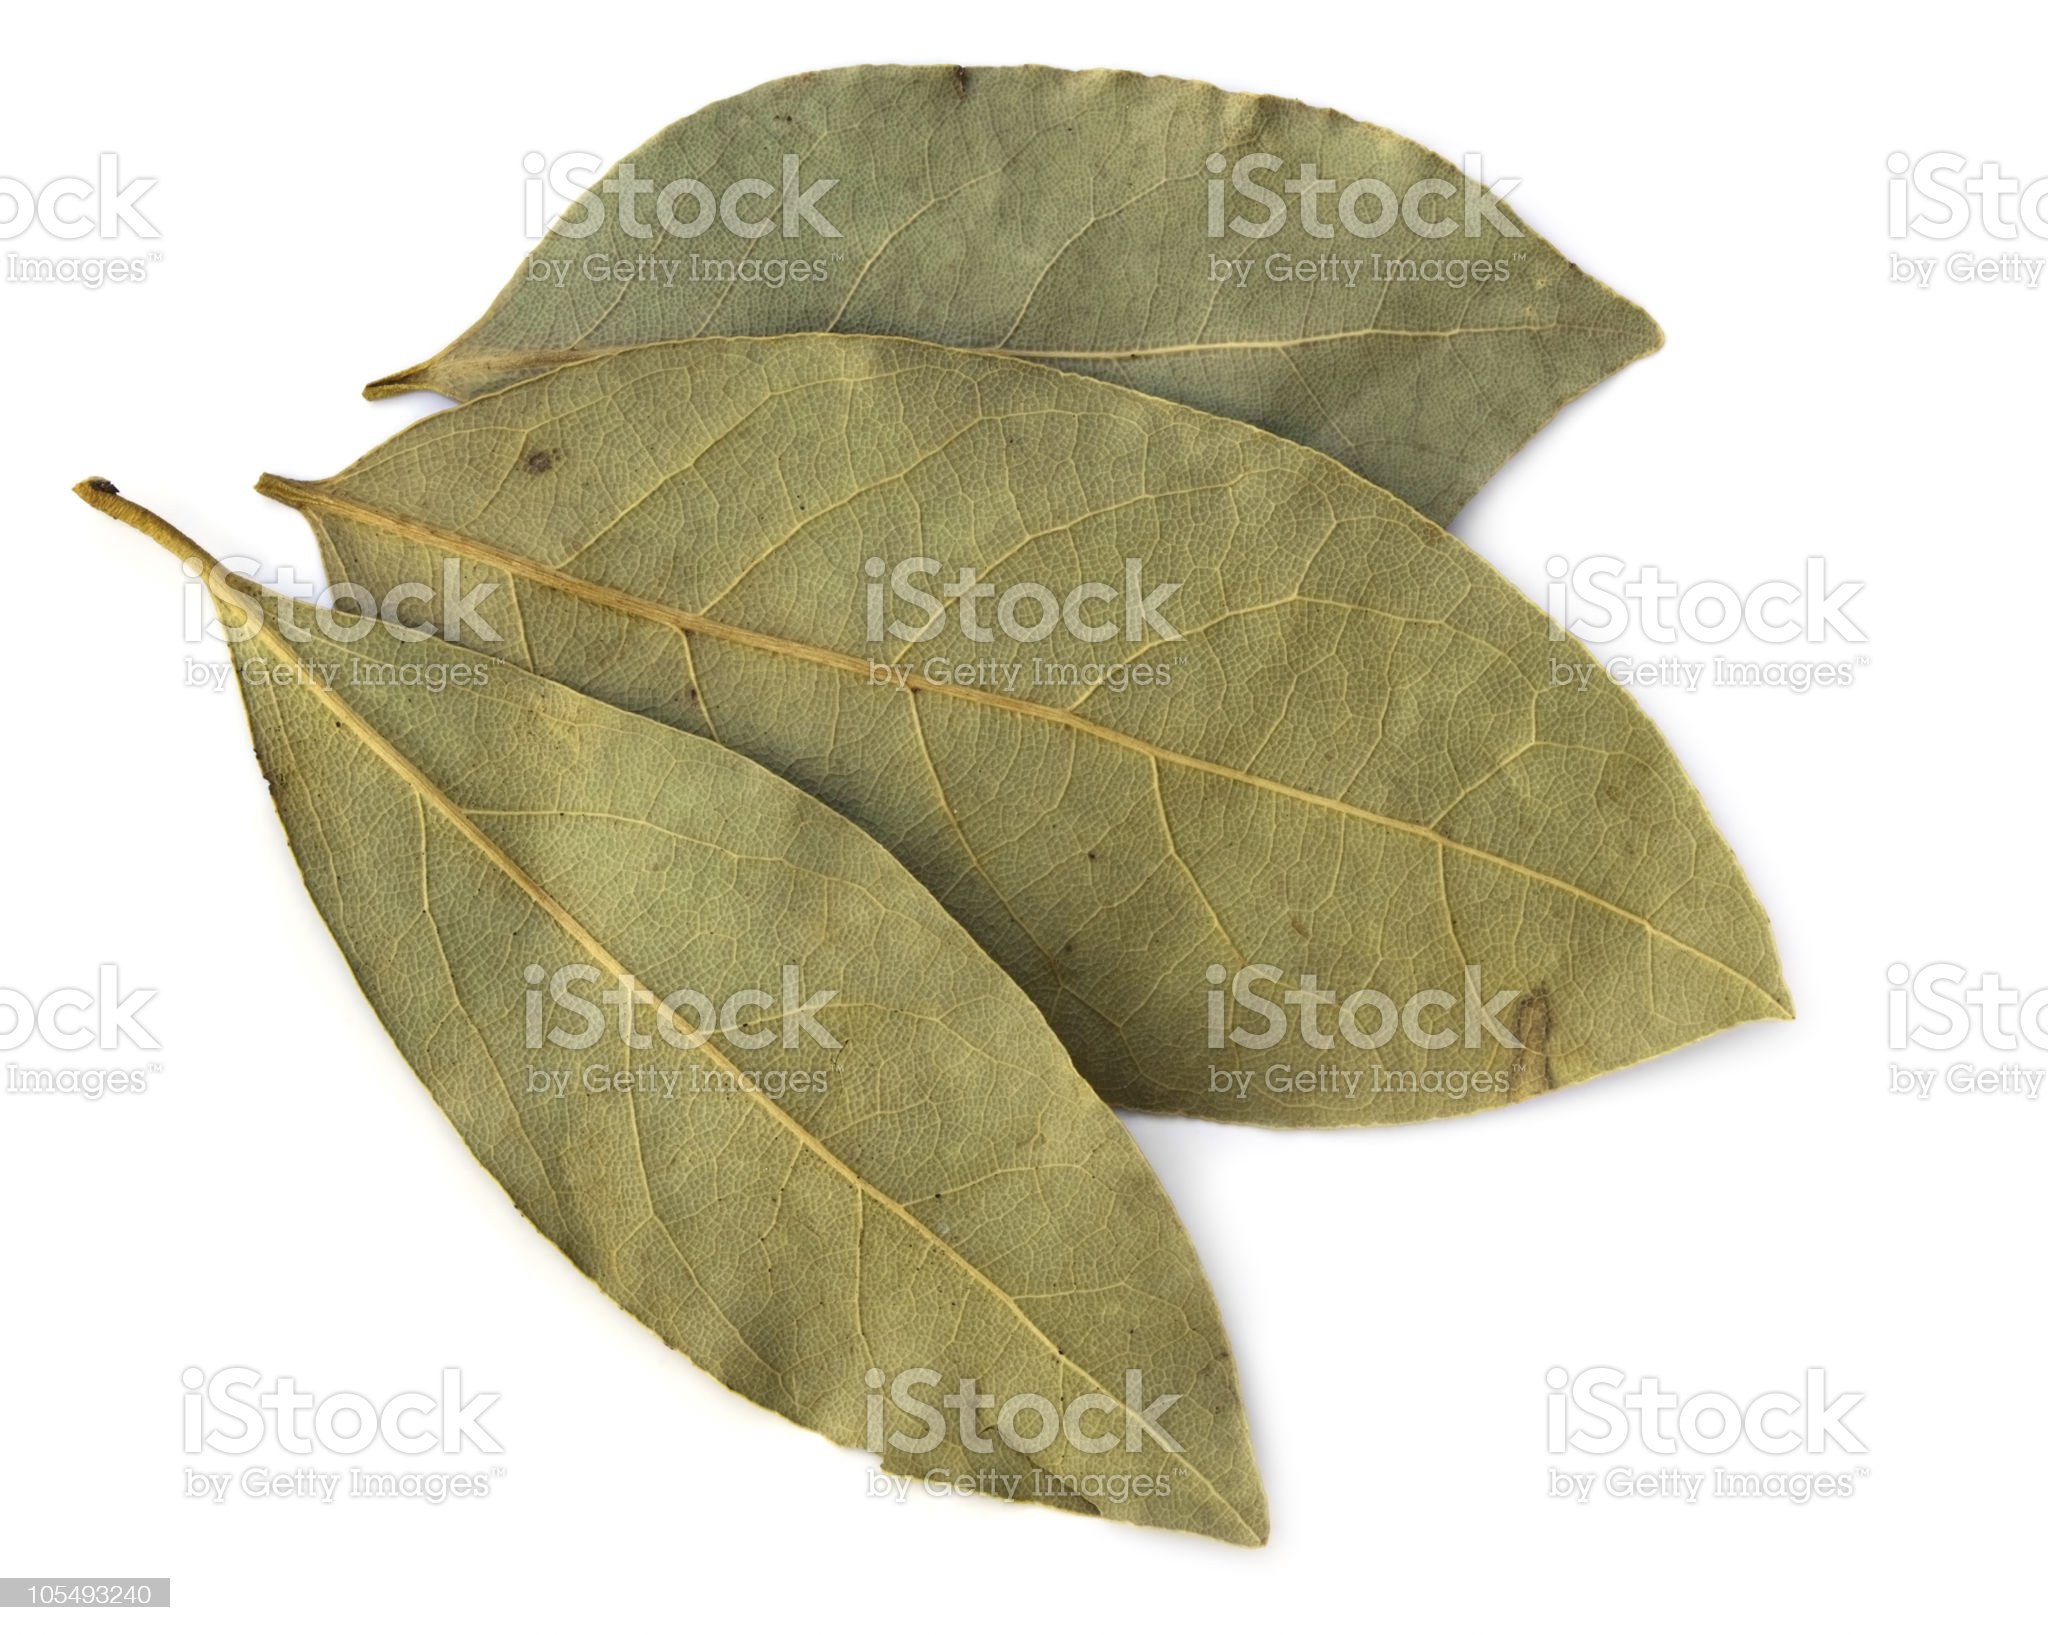 Dried Bay leaves royalty-free stock photo